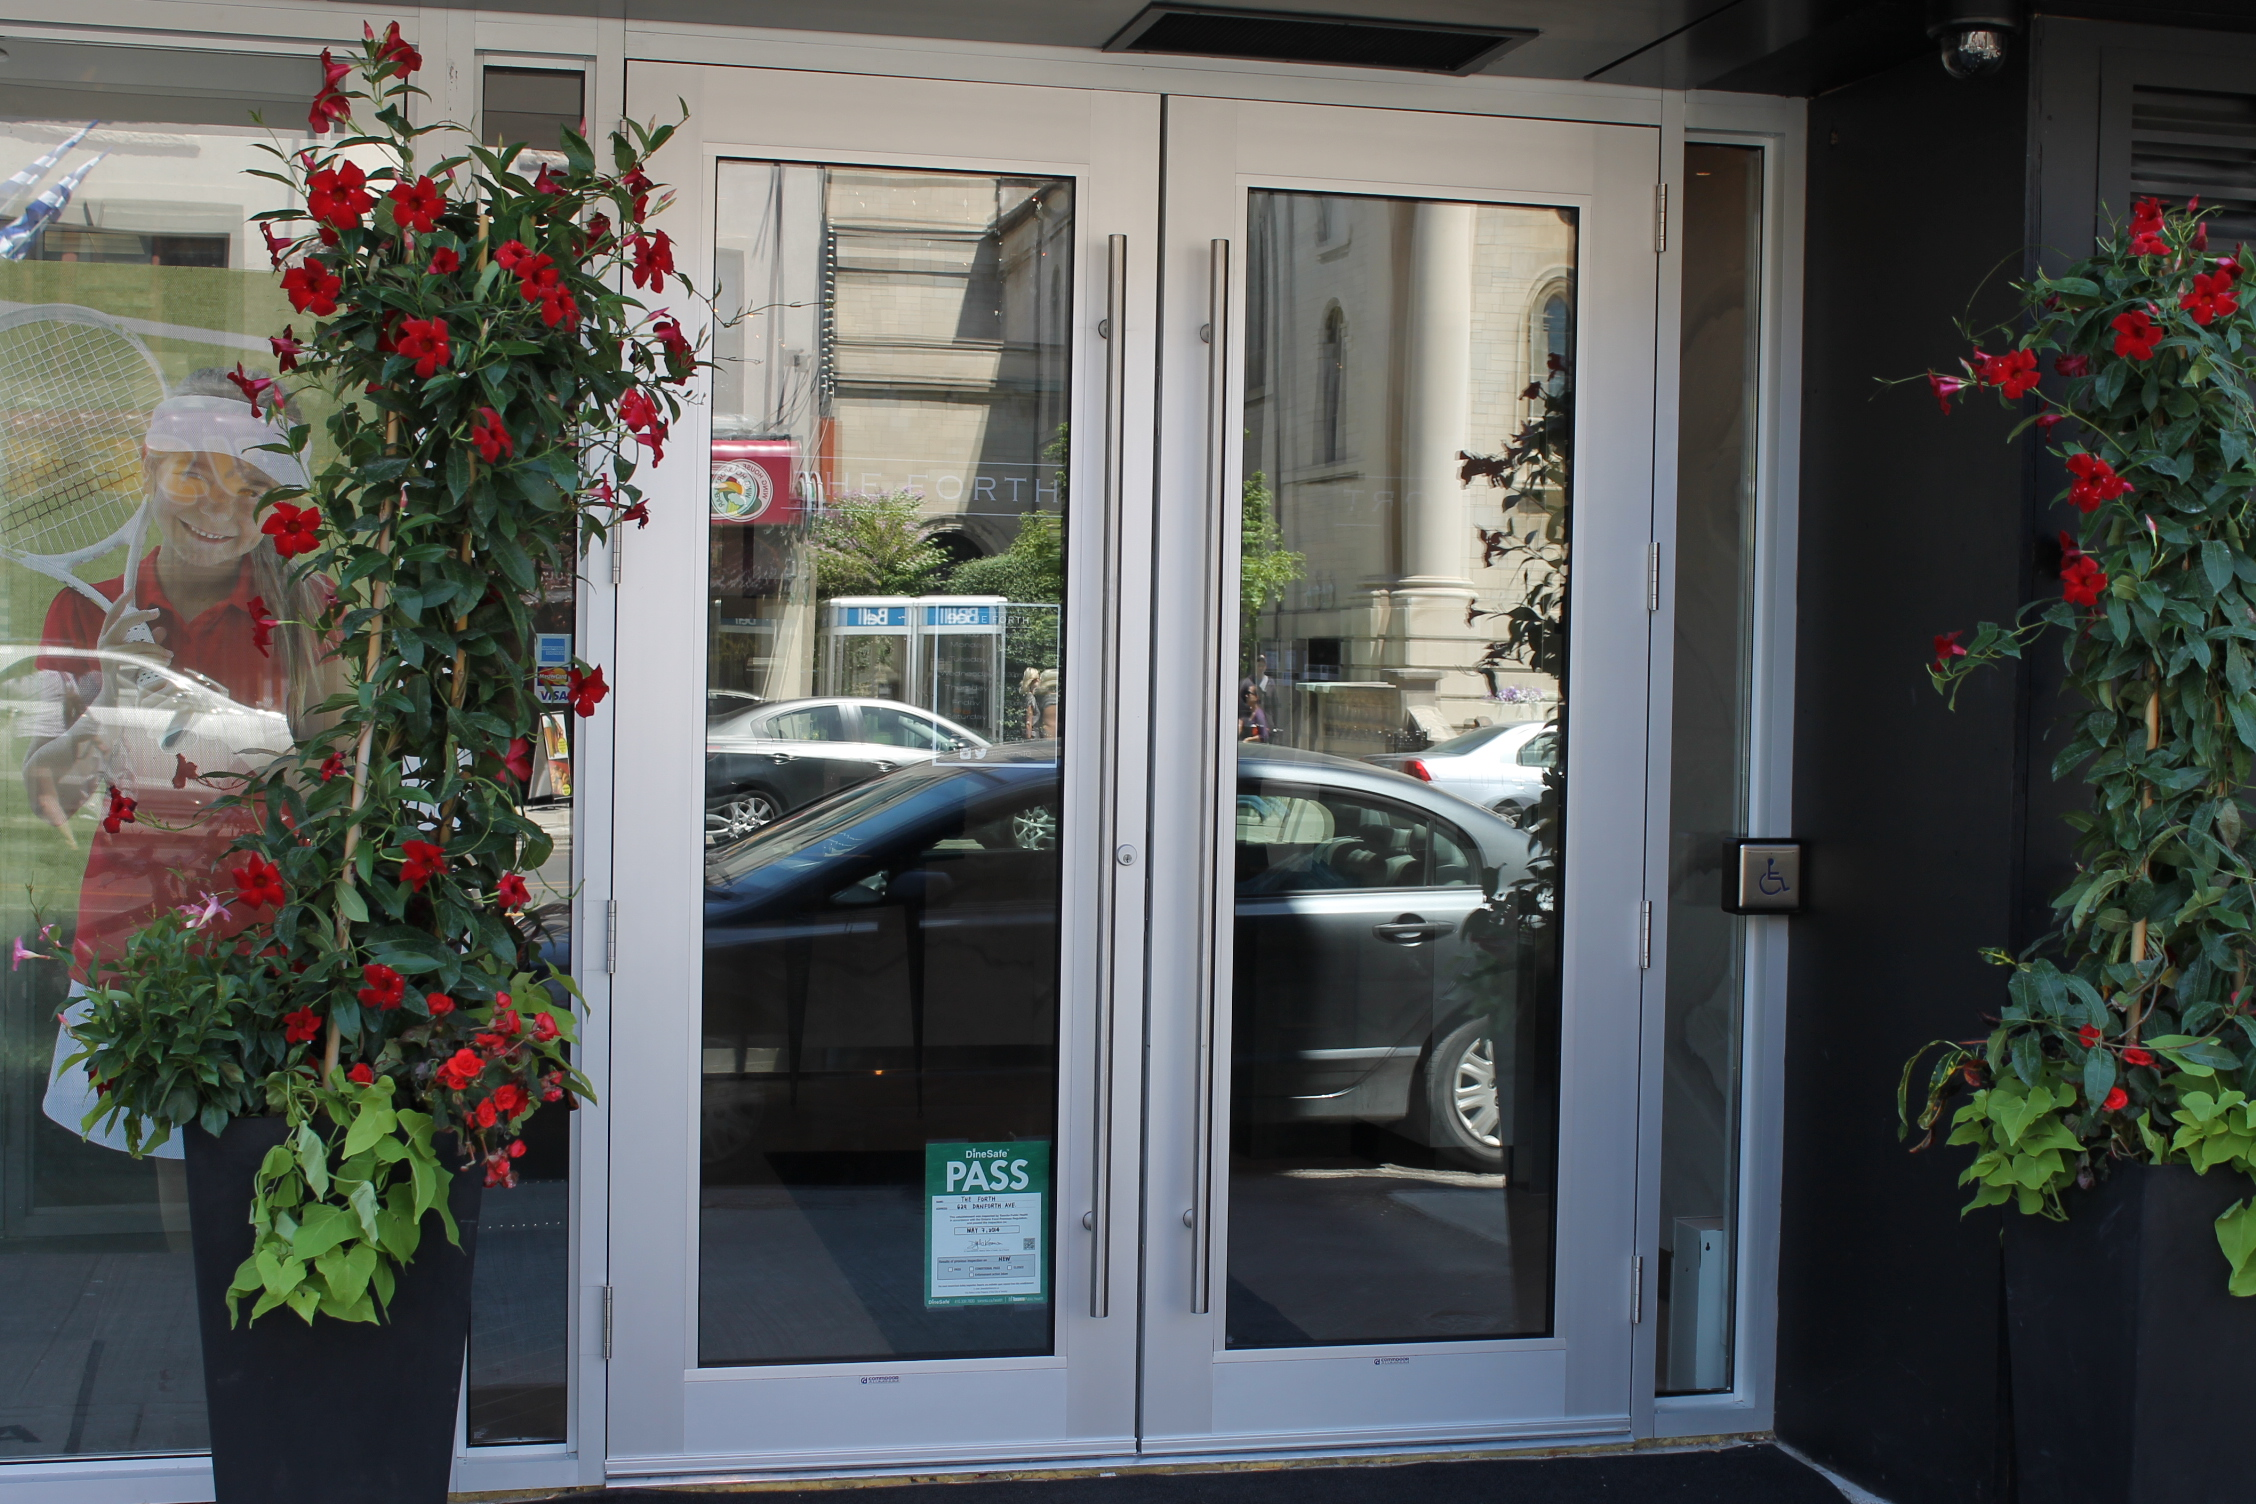 Image of the accessible double doors to enter.